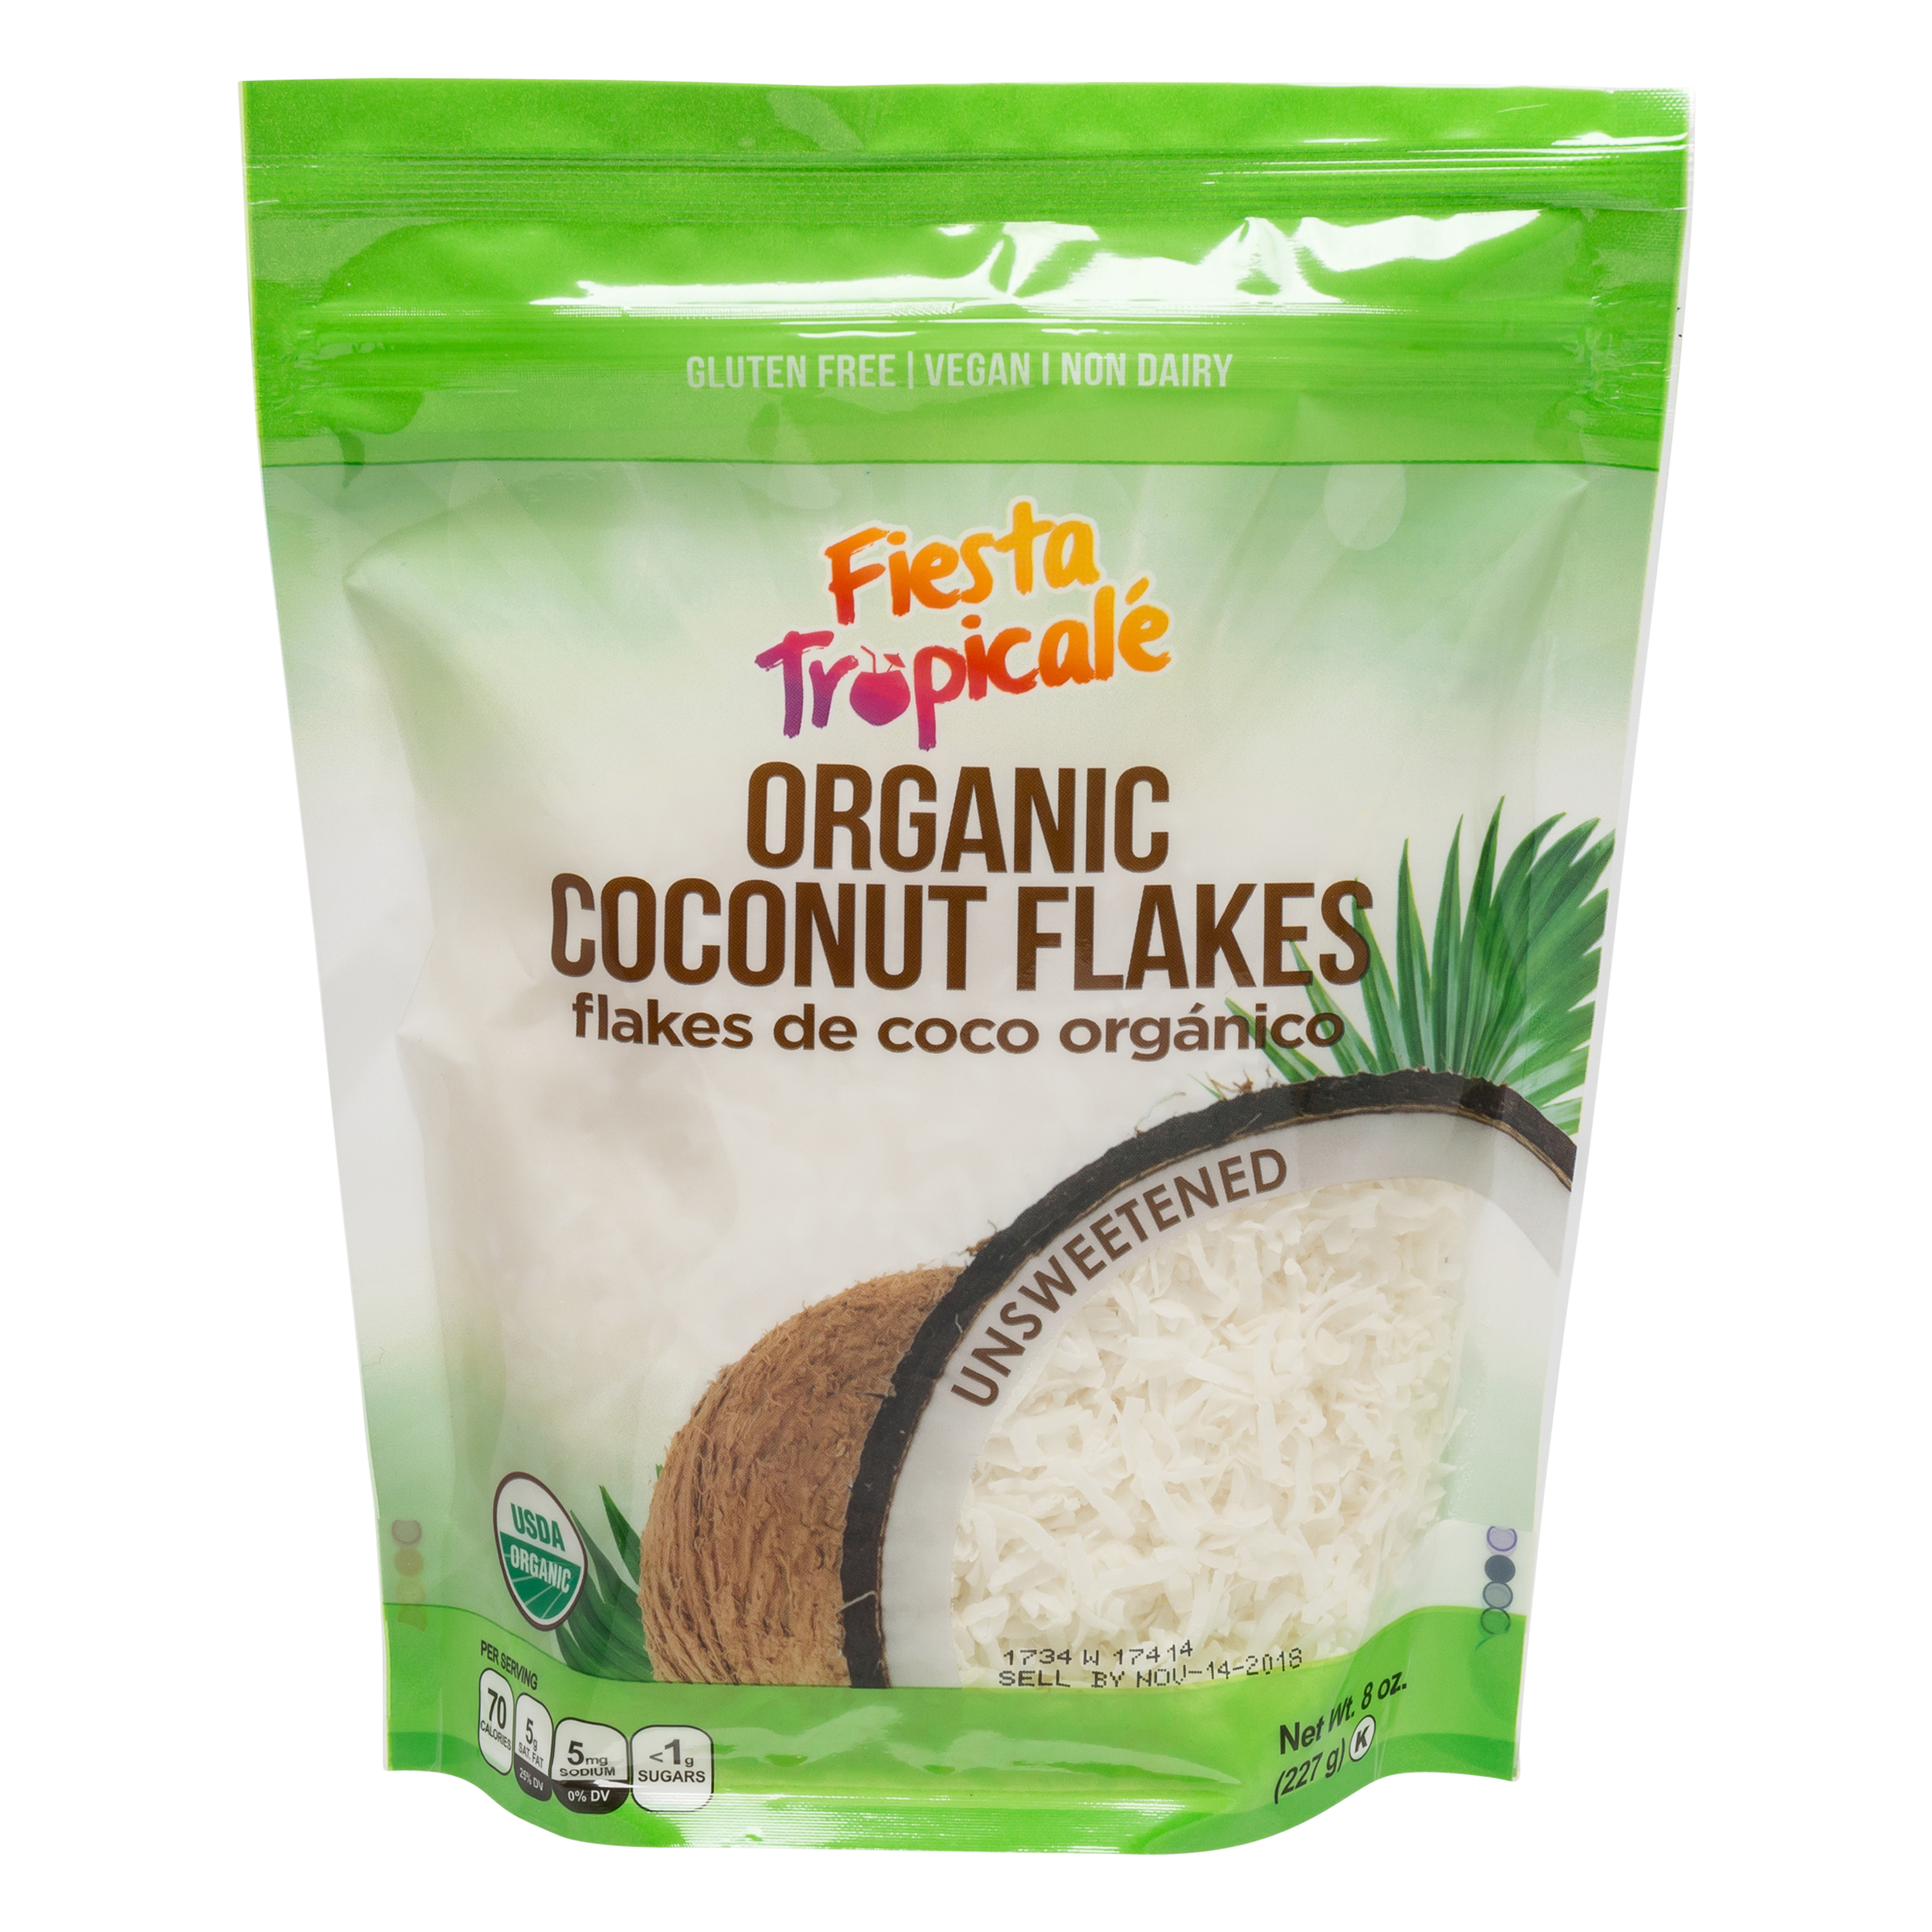 Fiesta Tropicale Organic Unsweetened Coconut Flakes